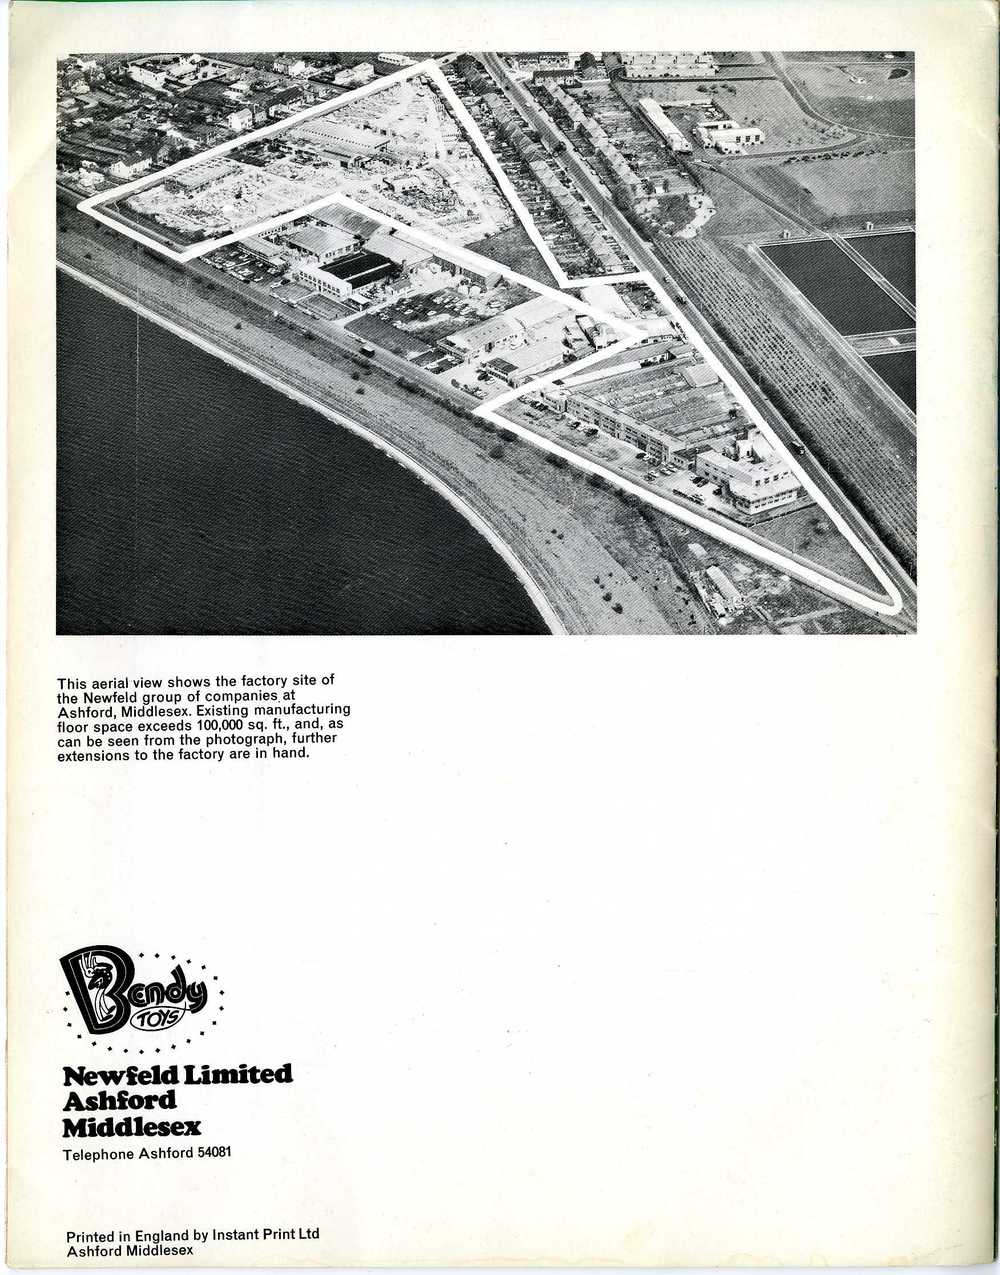 Aerial photograph of the Bendy Toy factory from the Newfeld Ltd. 1967 Annual Report